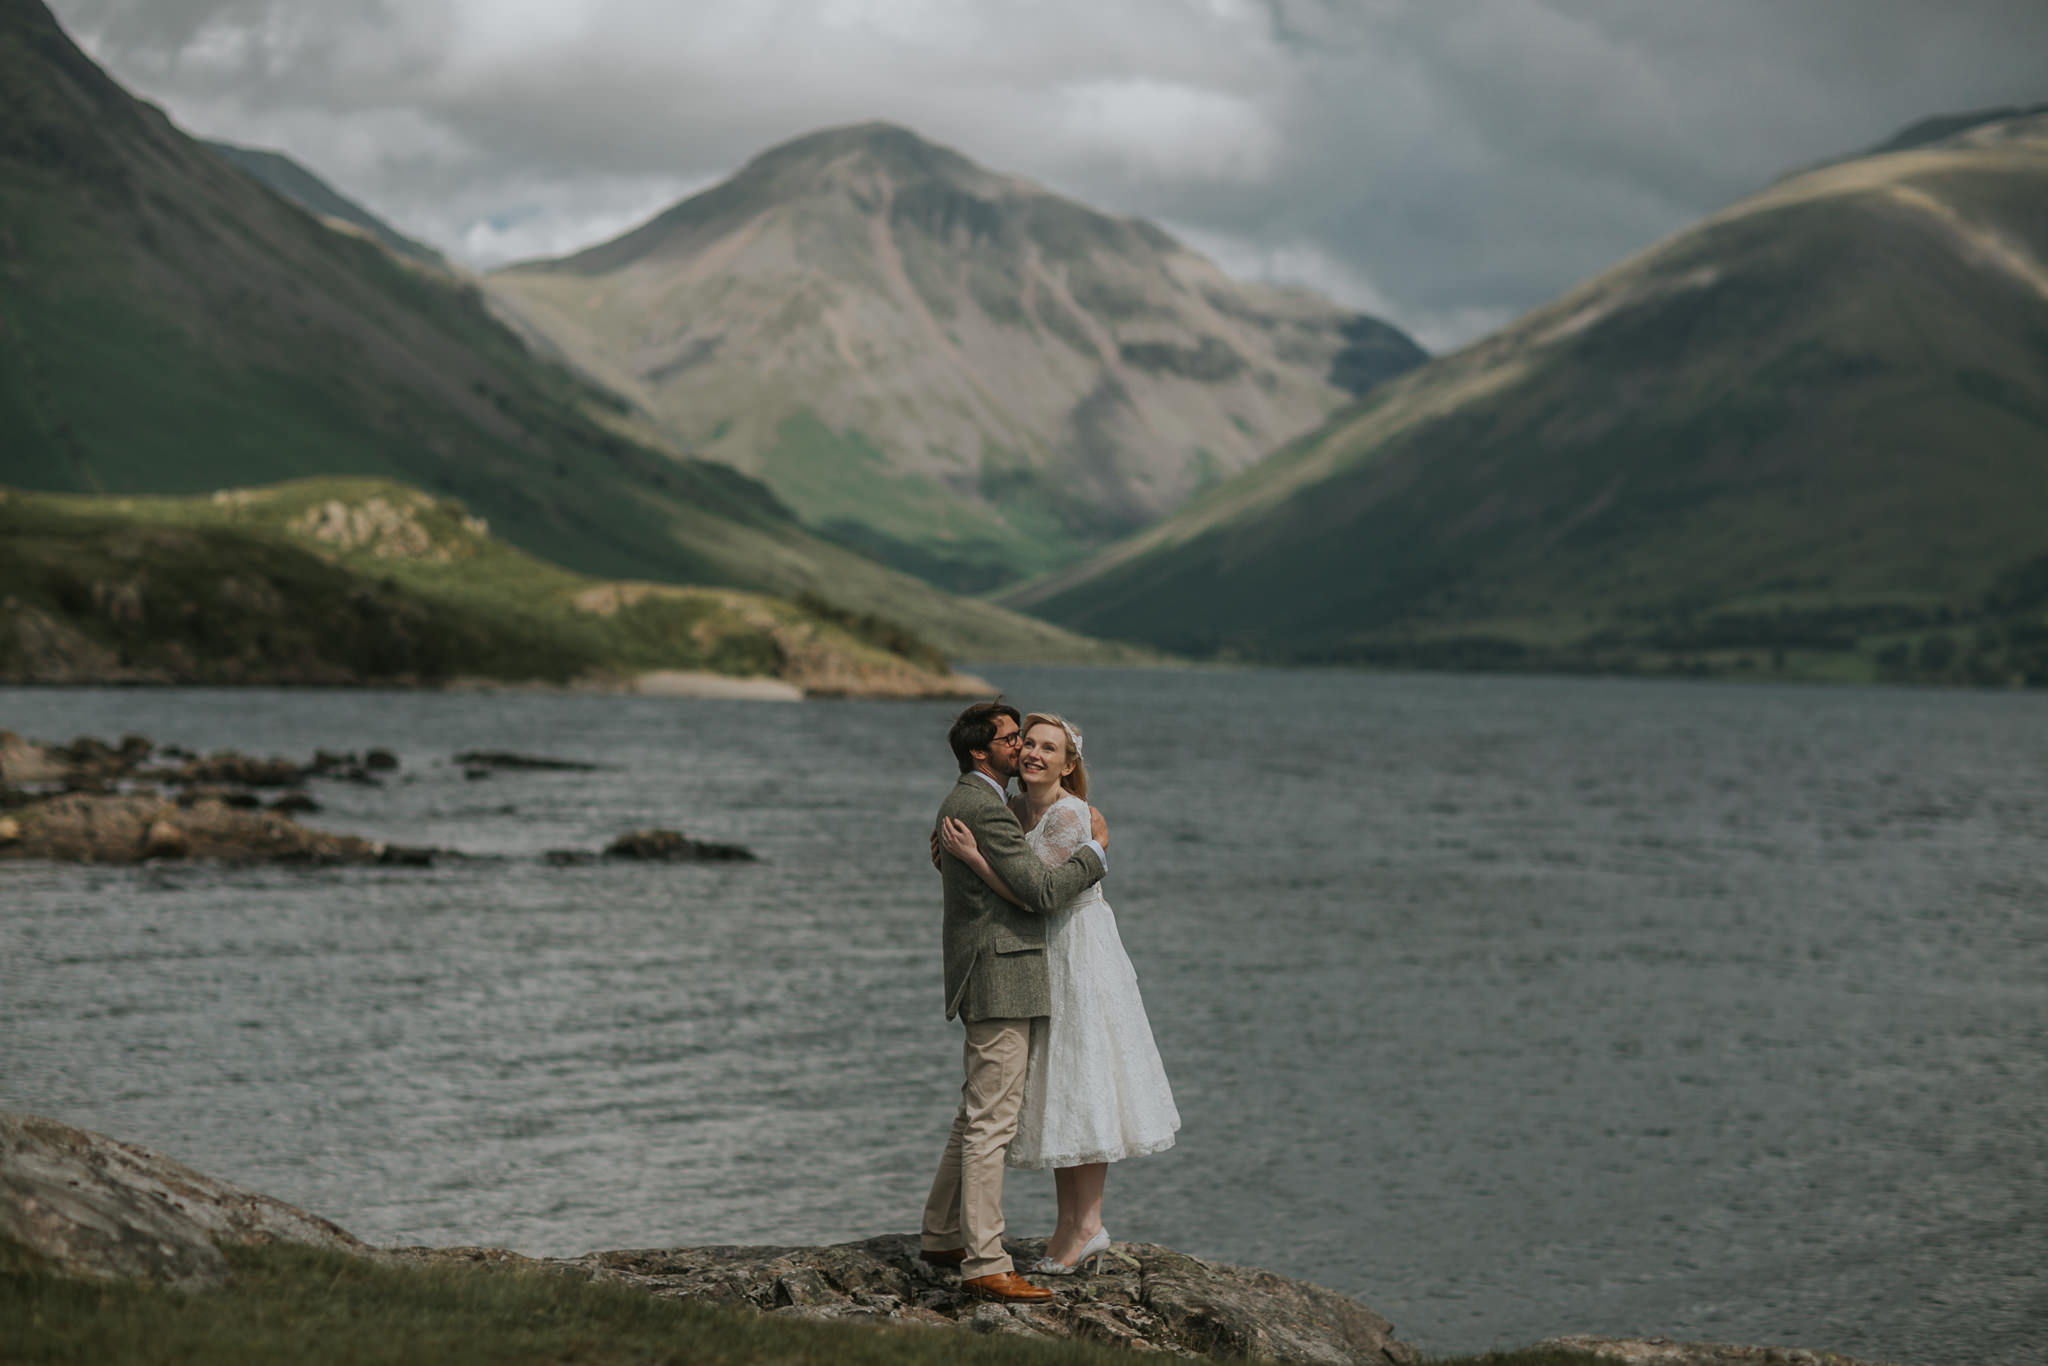 Embracing together in Langdale Valley